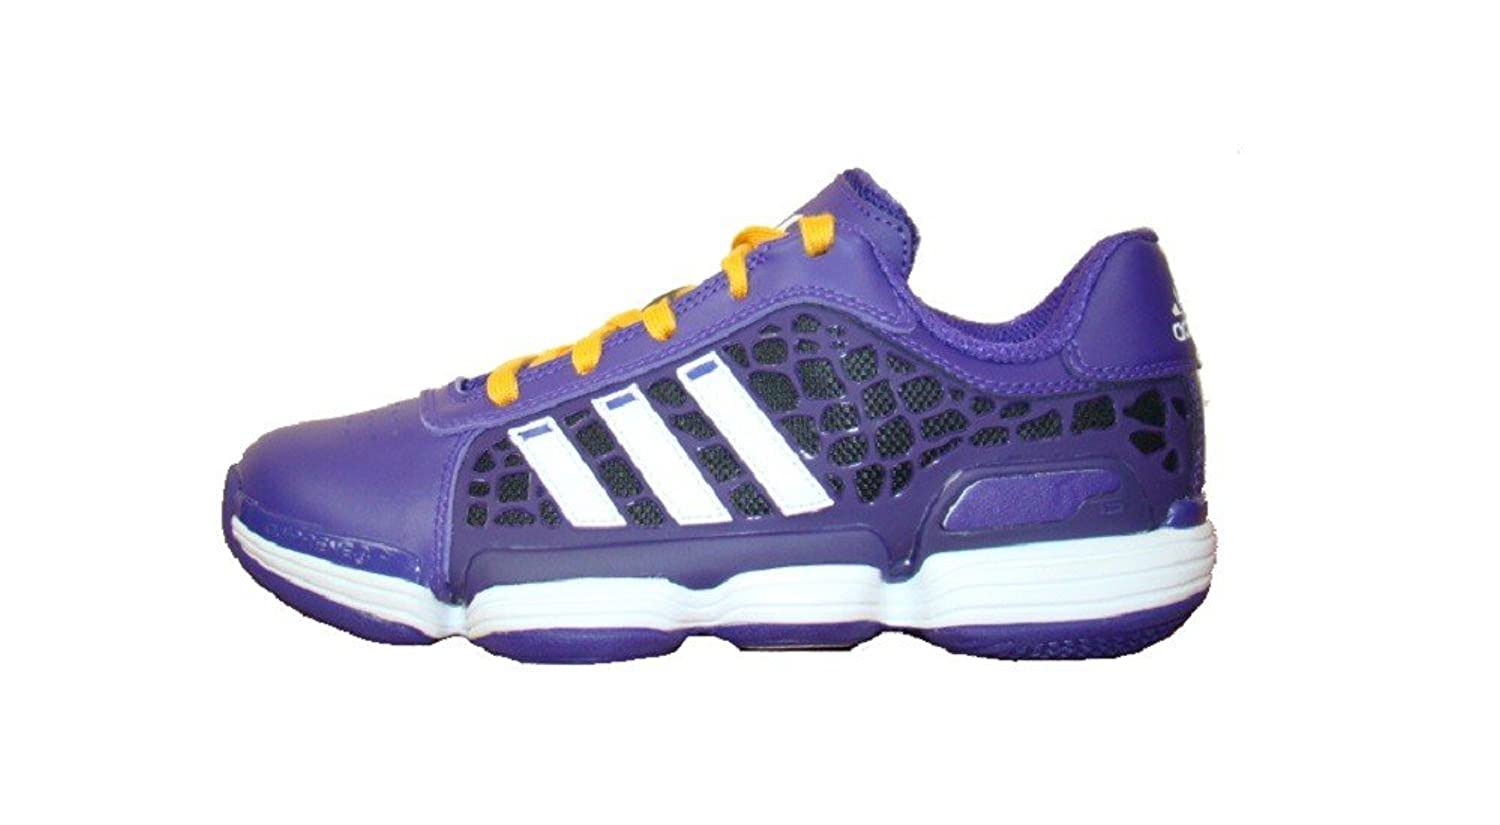 f6116807060d Amazon.com  Adidas Crazy Skin Low Sneaker Basketball shoes   indoor shoes  purple   white   orange  Shoes